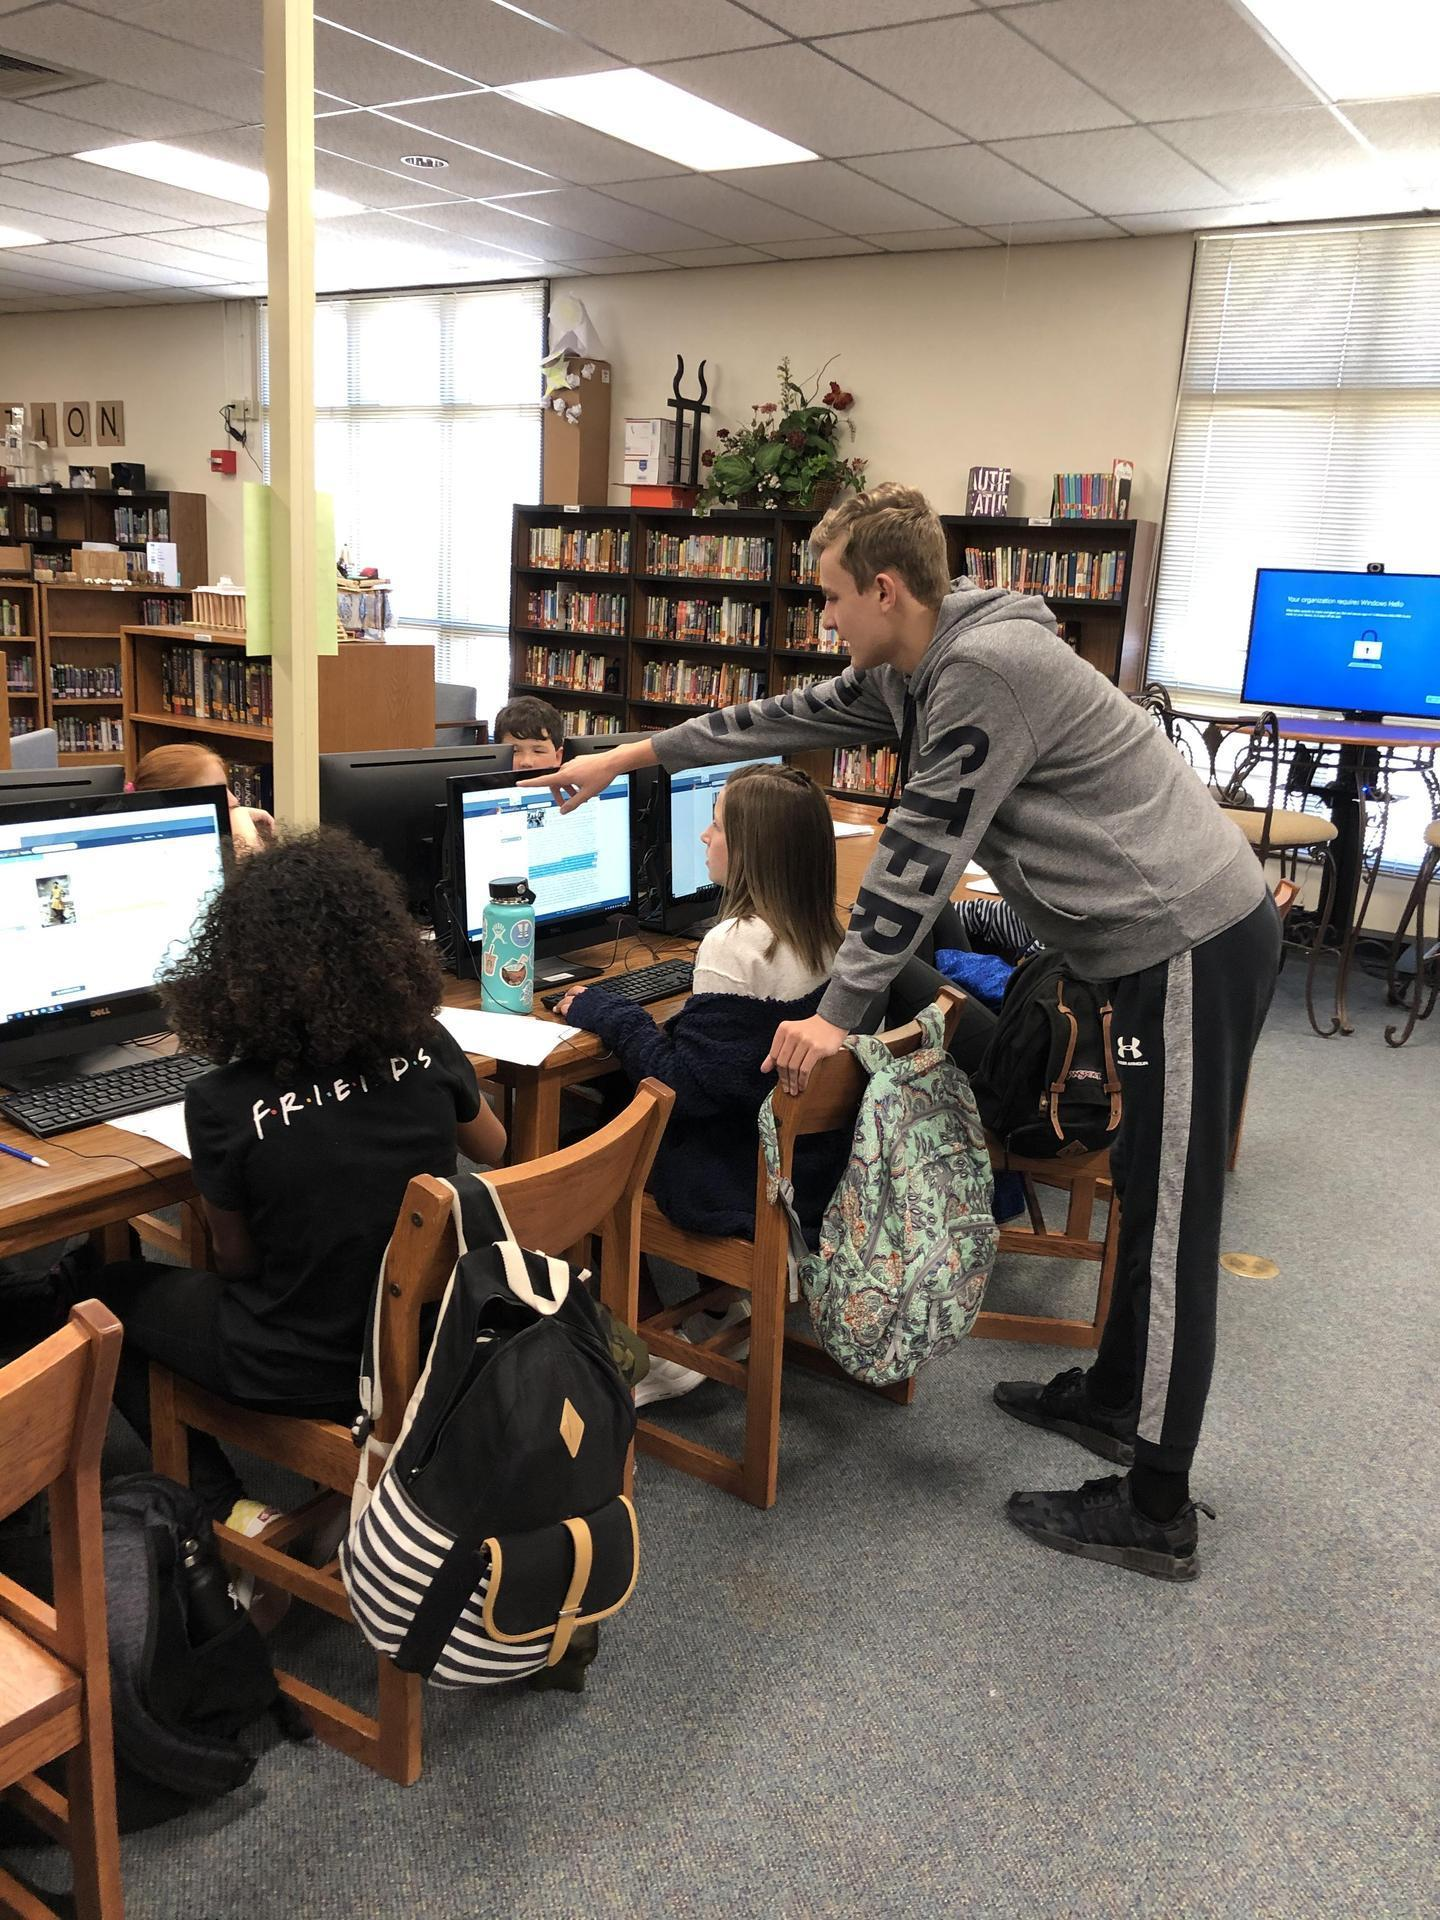 fms students using computers in Media Center